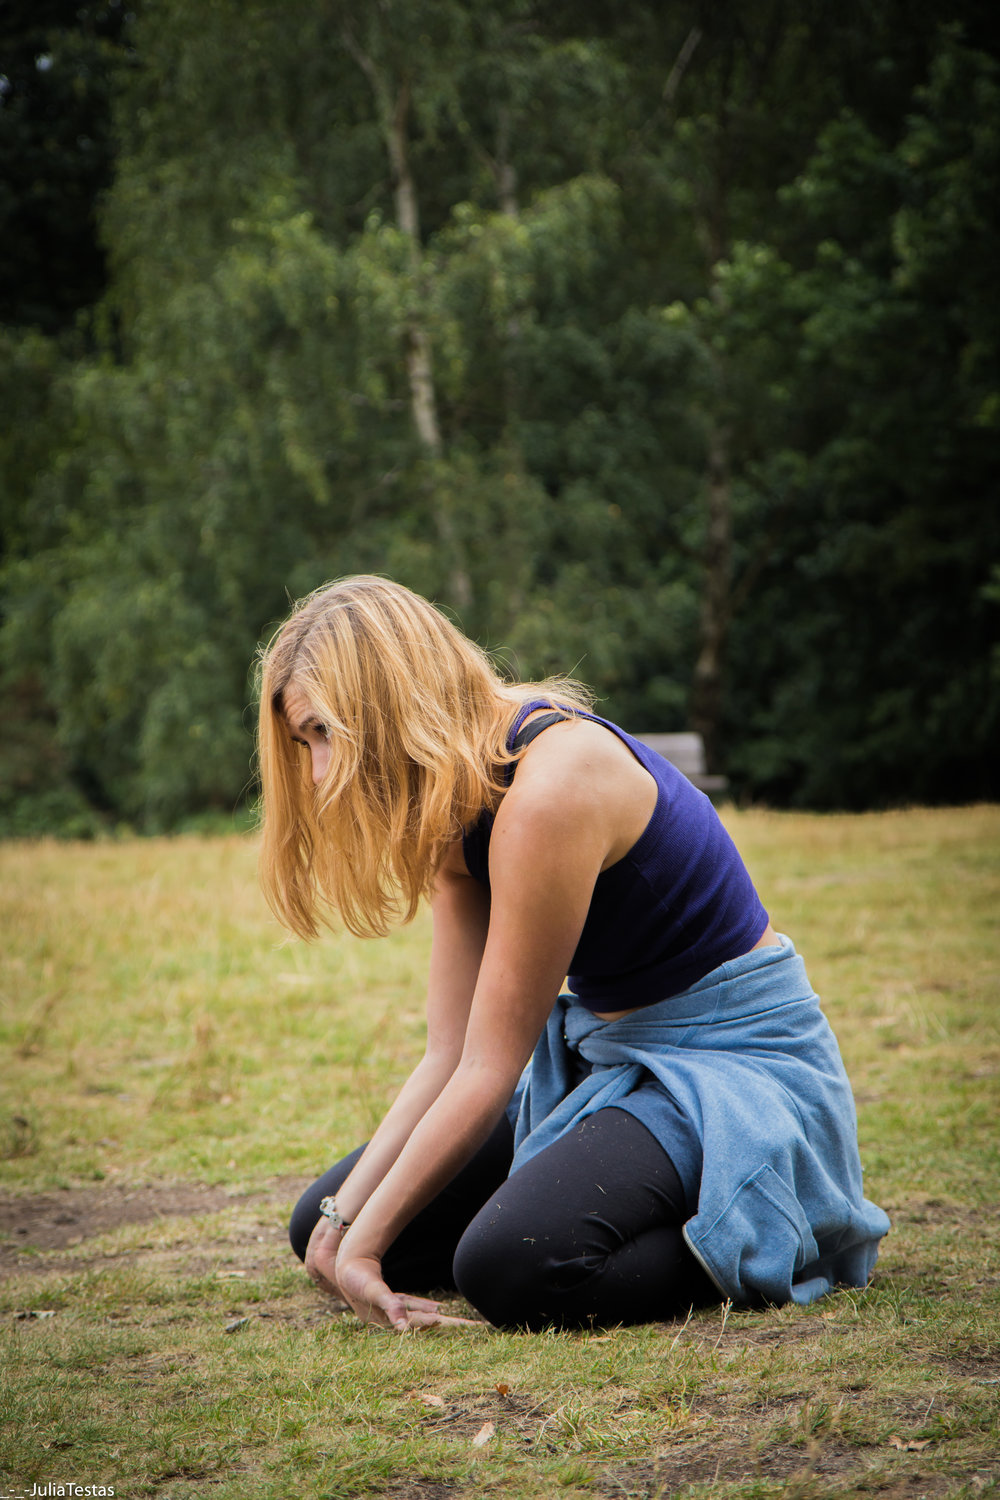 160902_TomEN_HampsteadHeath_38.jpg